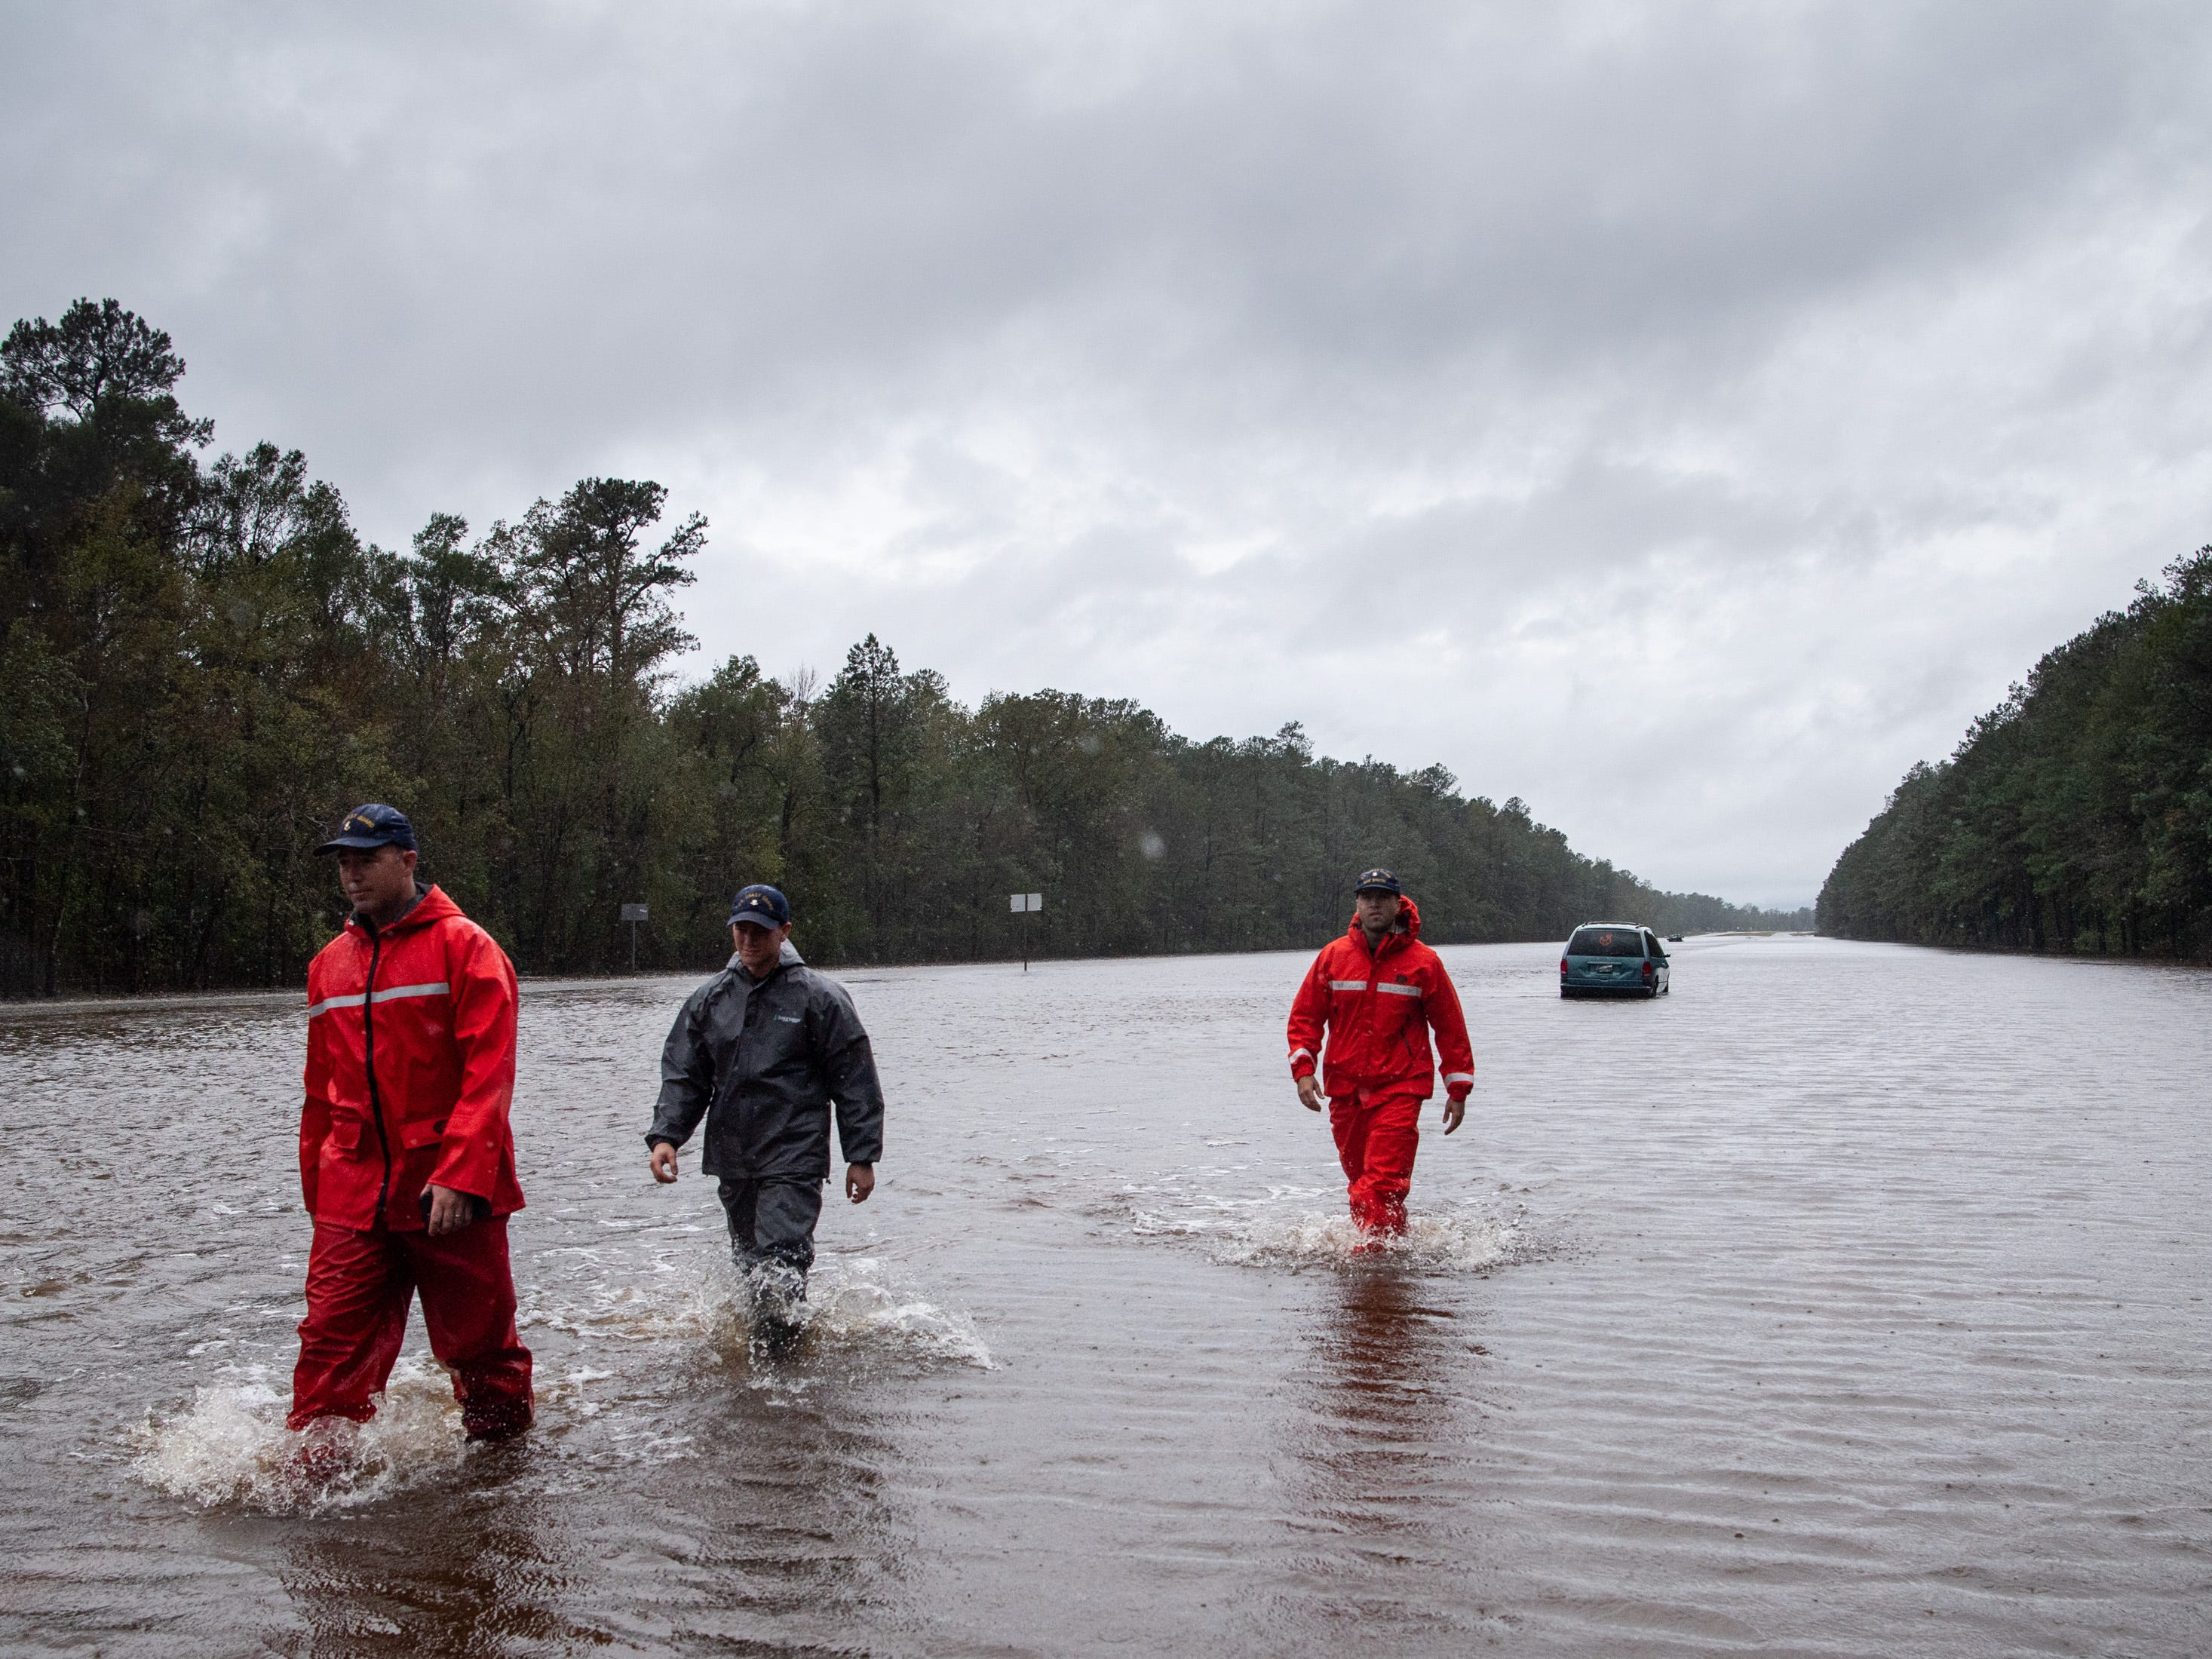 Coast Guardsmen check on abandoned cars on Andrew Jackson Highway near Hallsboro, N.C., Sunday, Sept. 16, 2018.